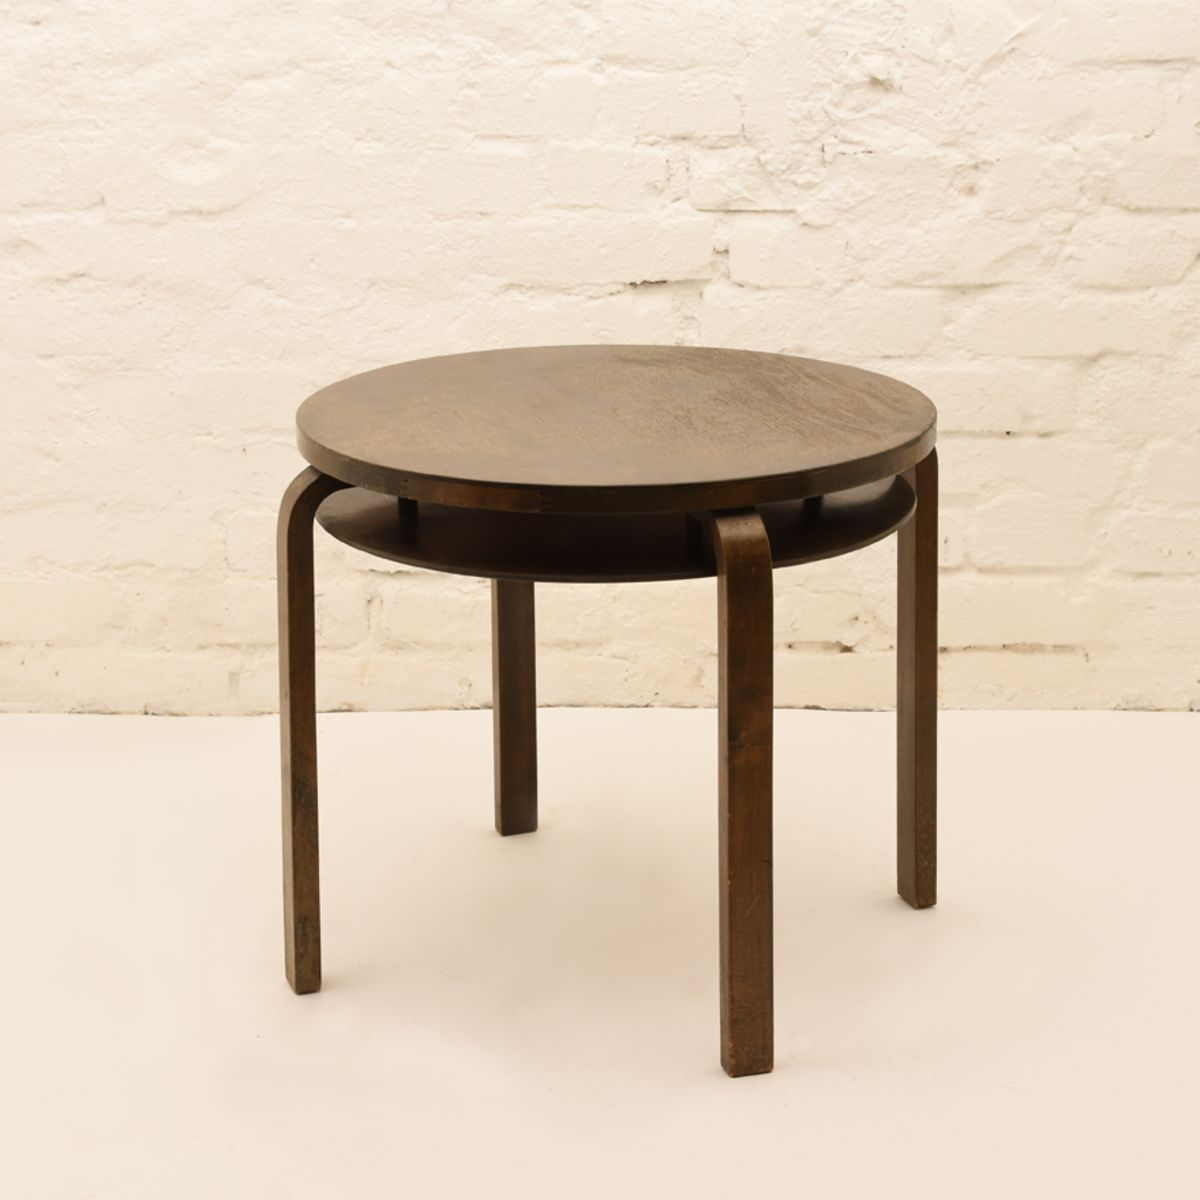 Alvar-Aalto_Club-Table-907B_Stained-Birch